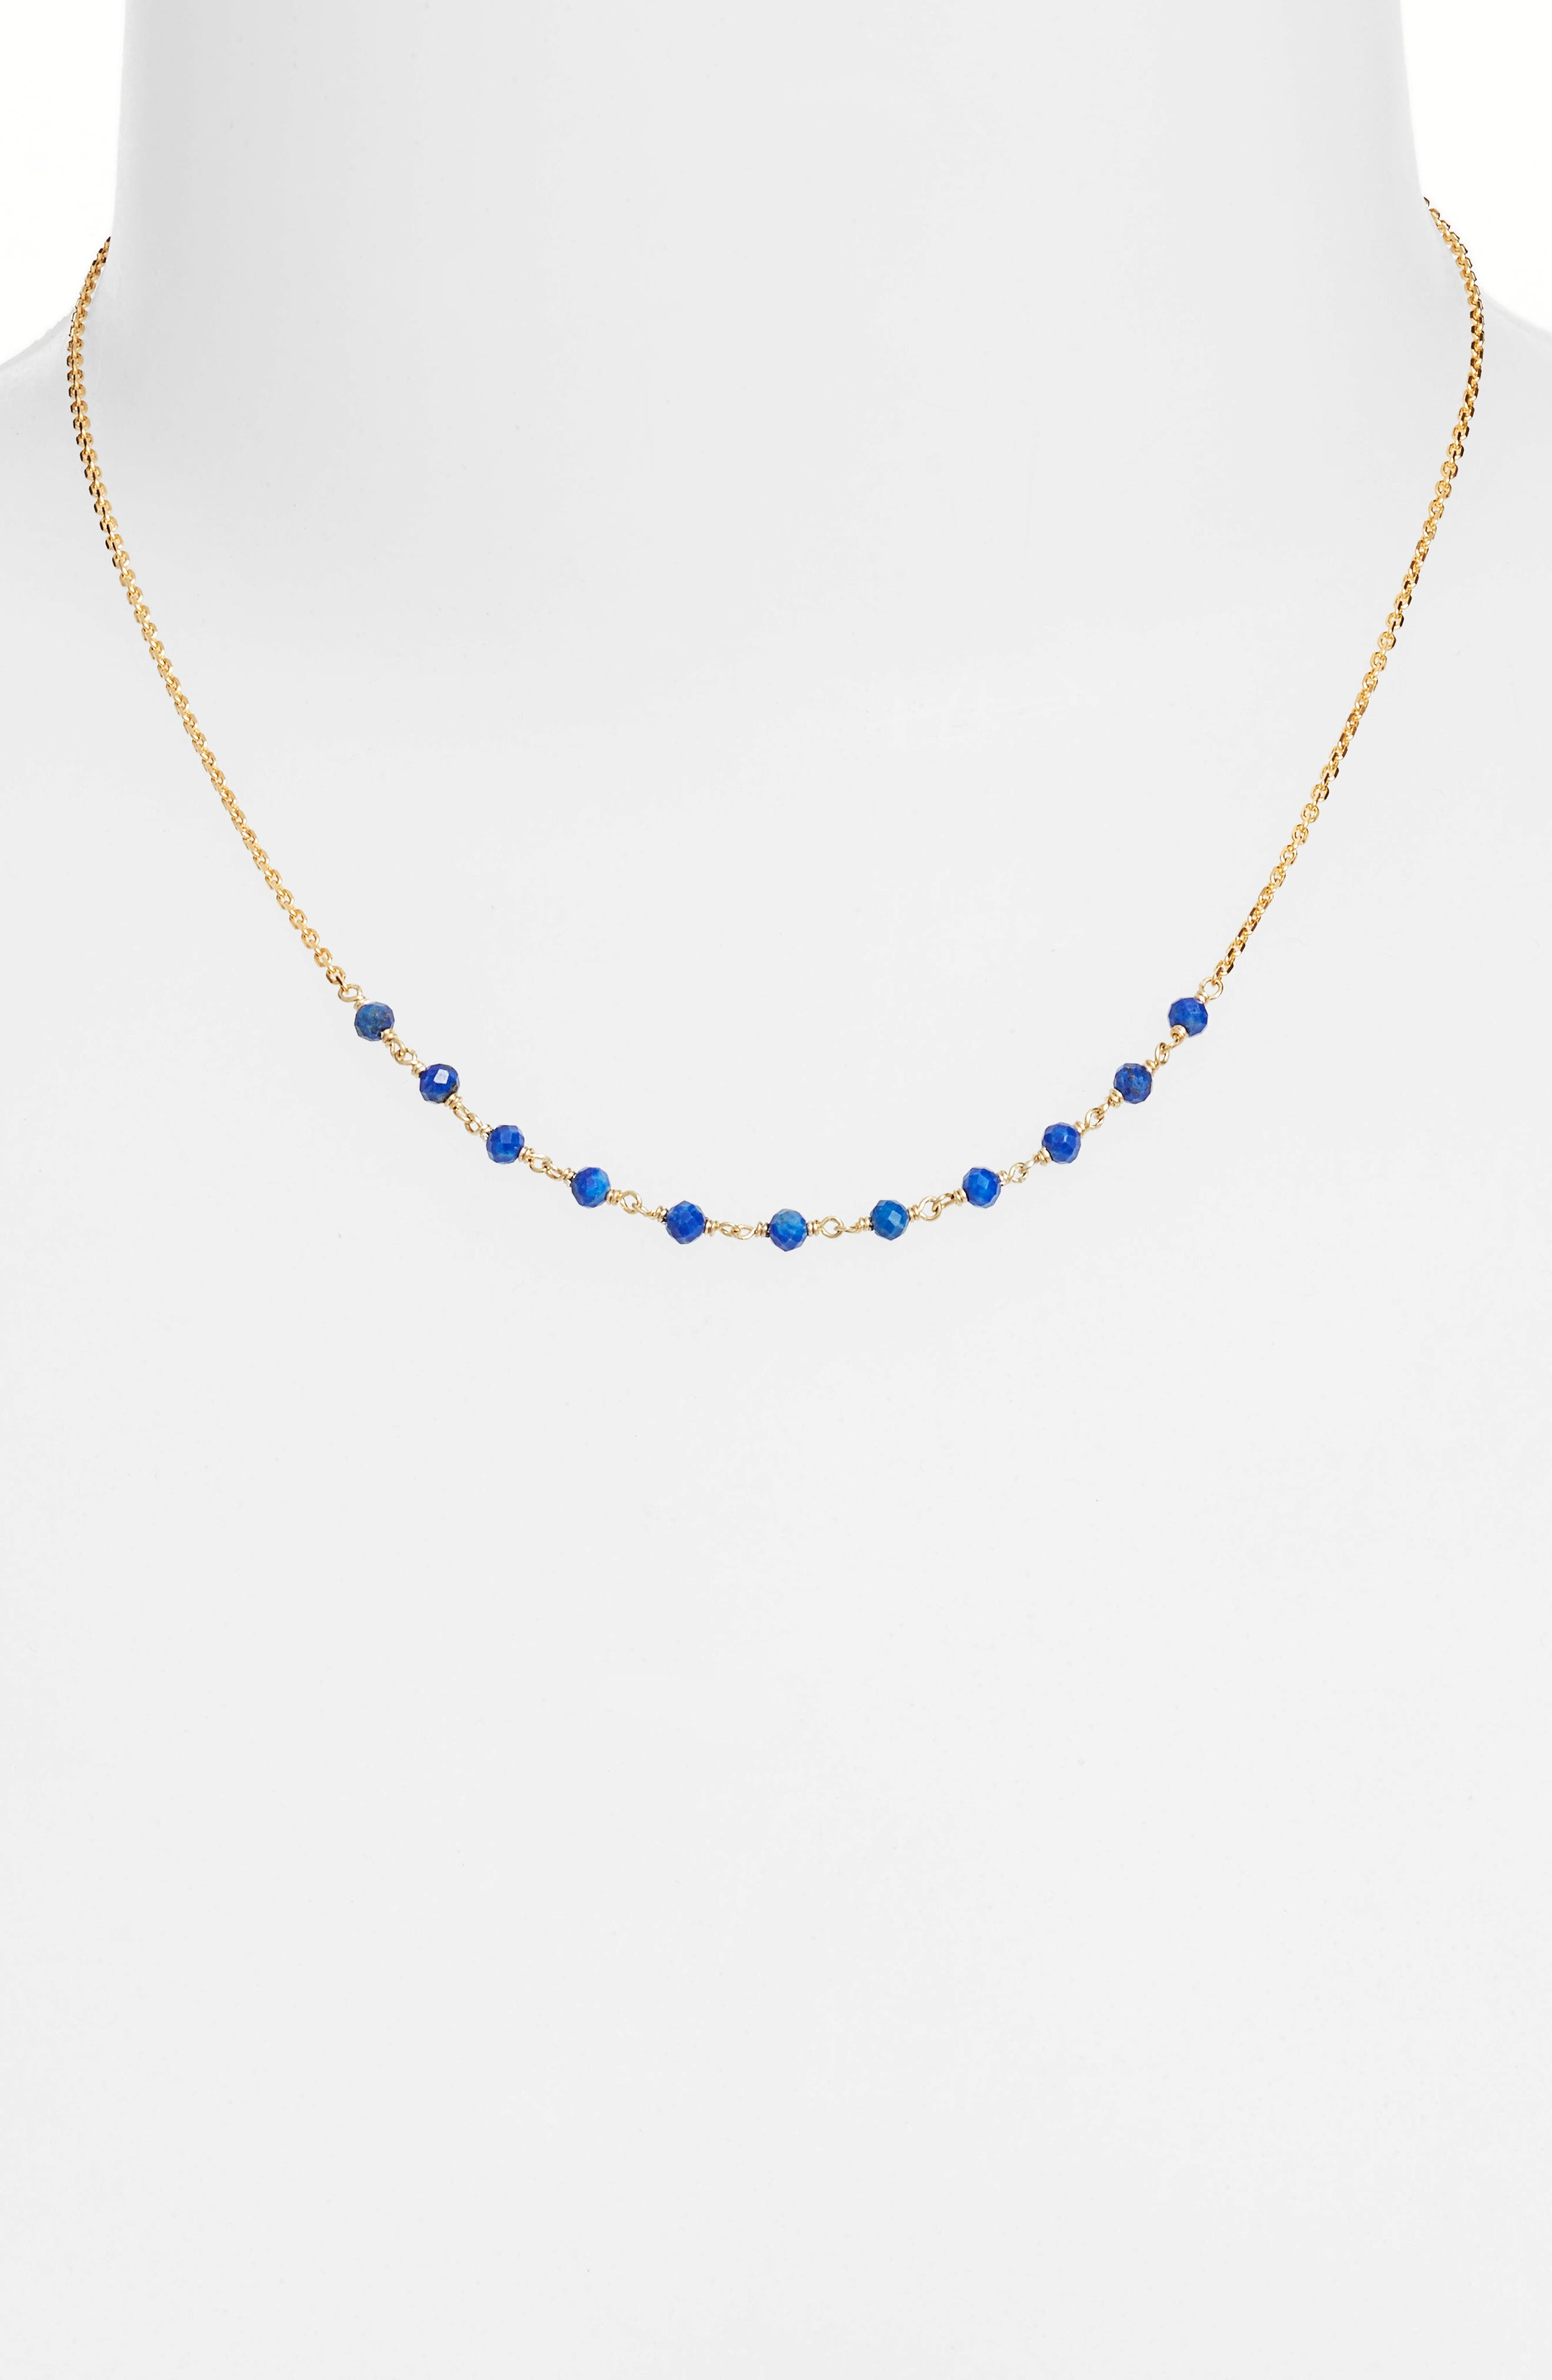 Gold & Bead Necklace,                             Alternate thumbnail 2, color,                             710